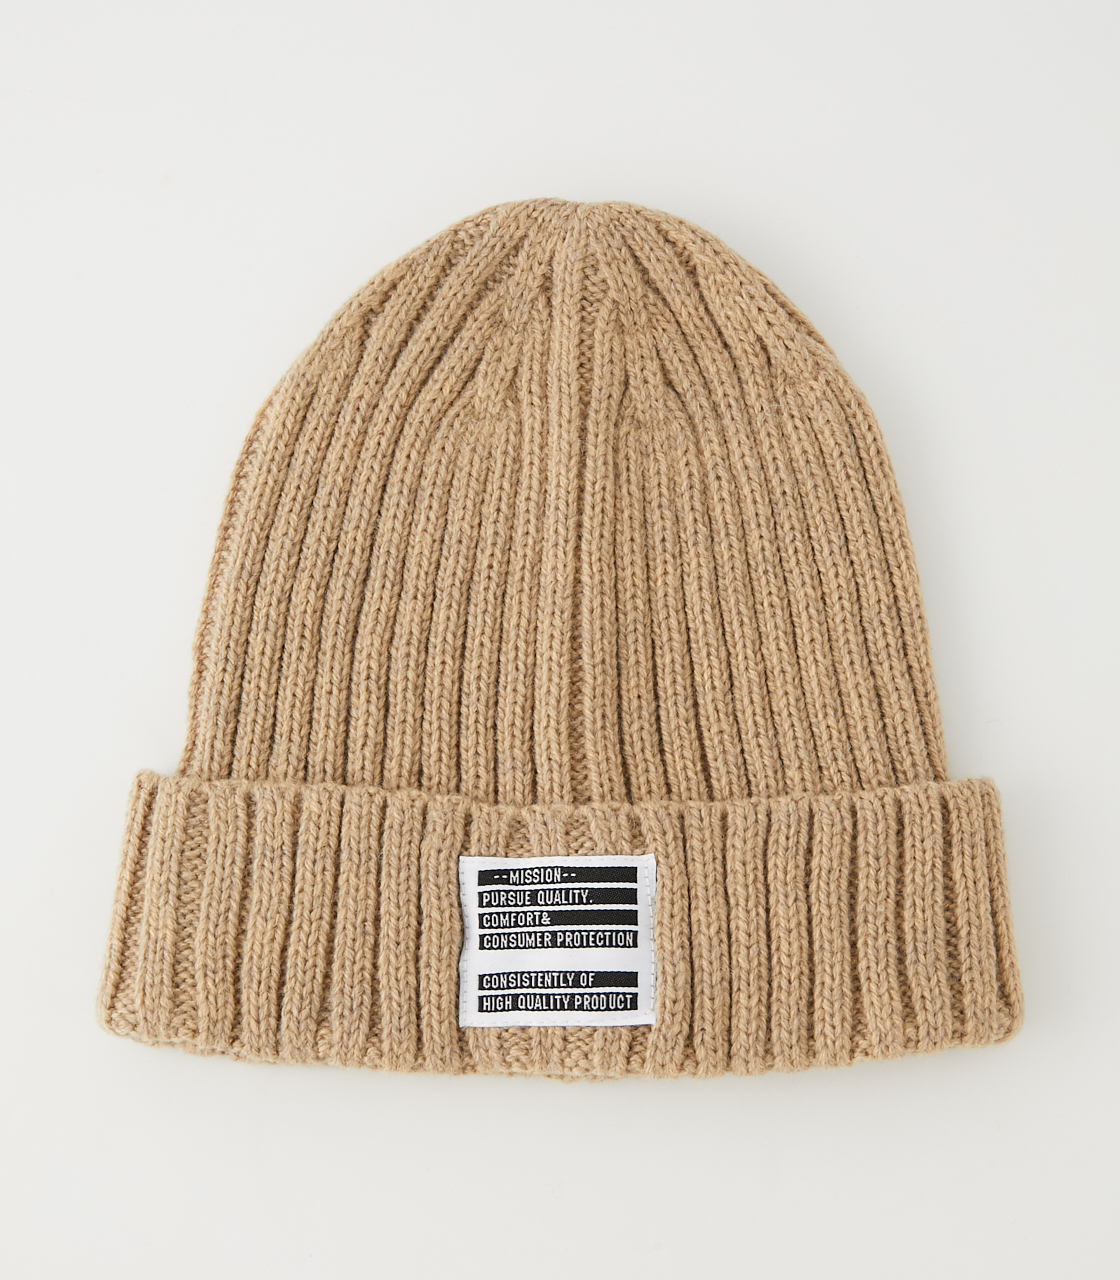 WAPPEN BASIC KNIT CAP/ワッペンベーシックニットキャップ 詳細画像 BEG 1